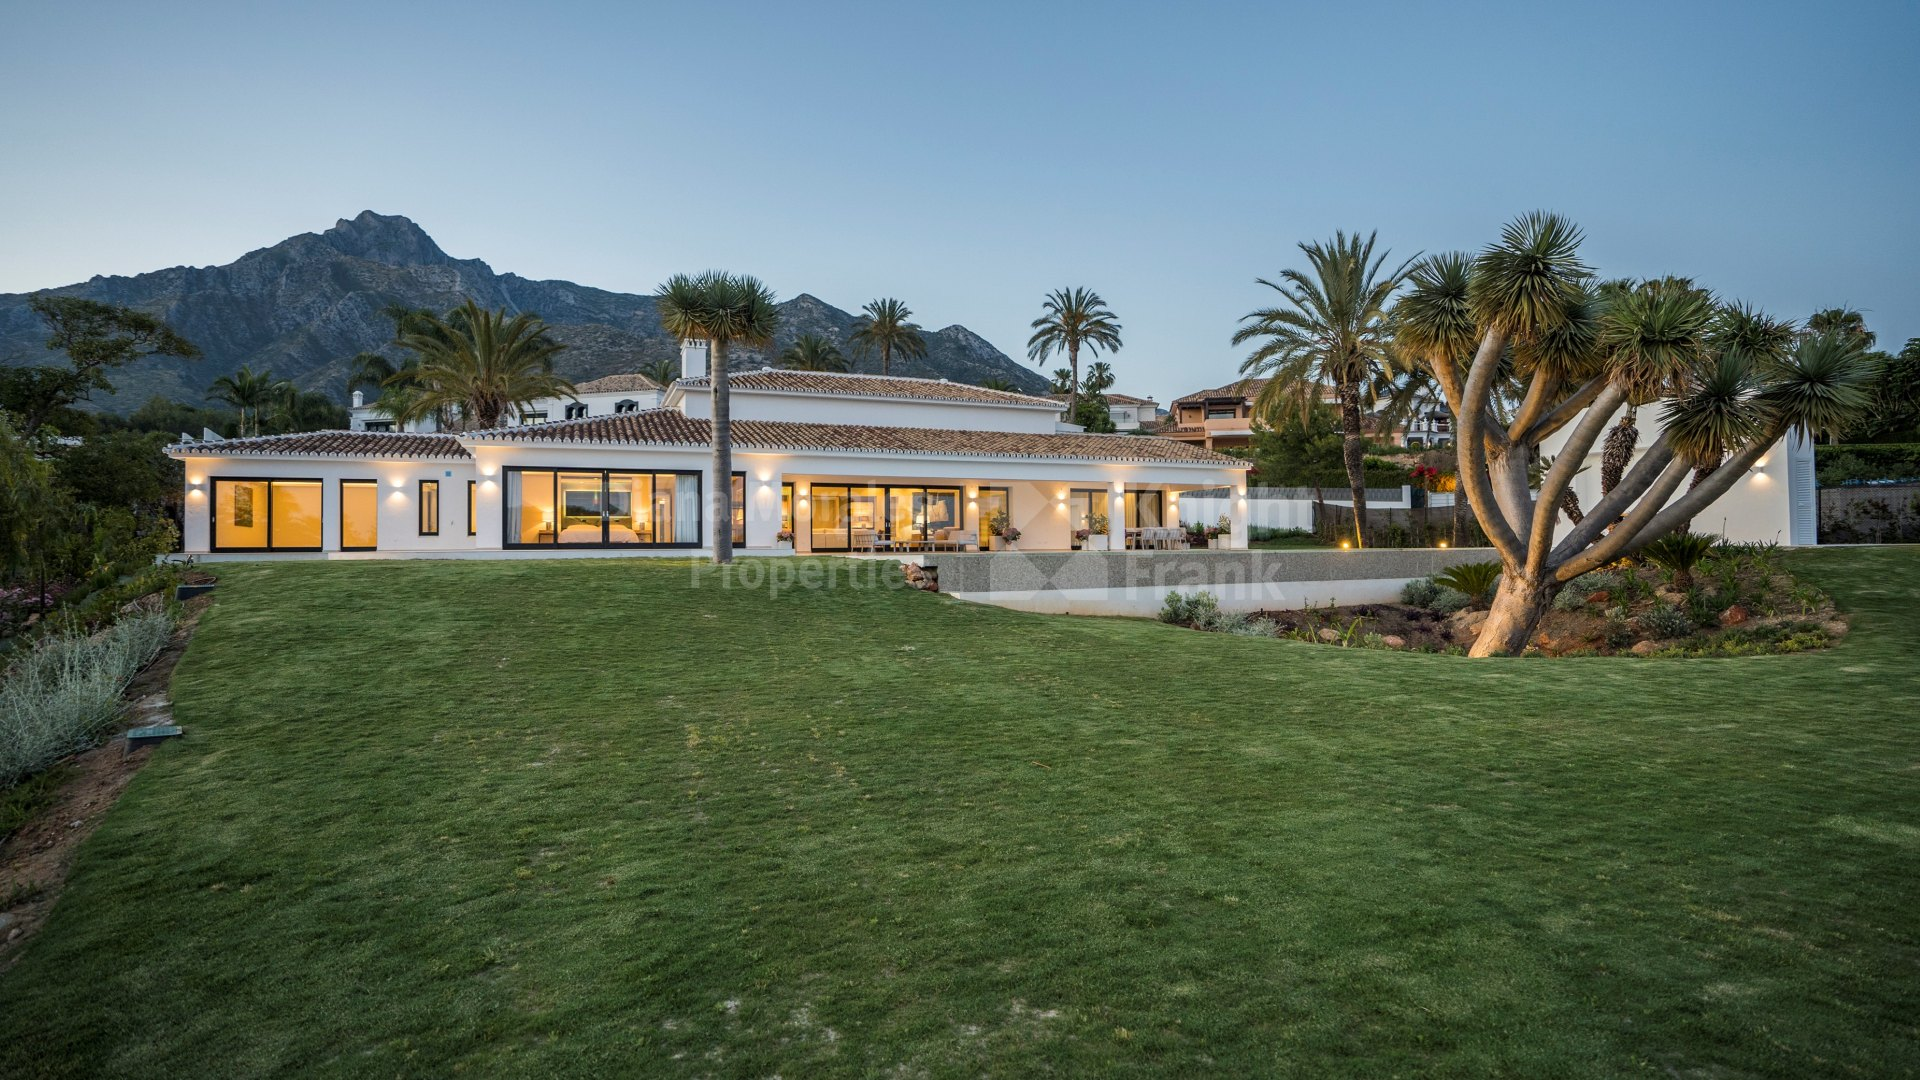 Nagüeles, Exquisite villa on the slopes of Sierra Blanca